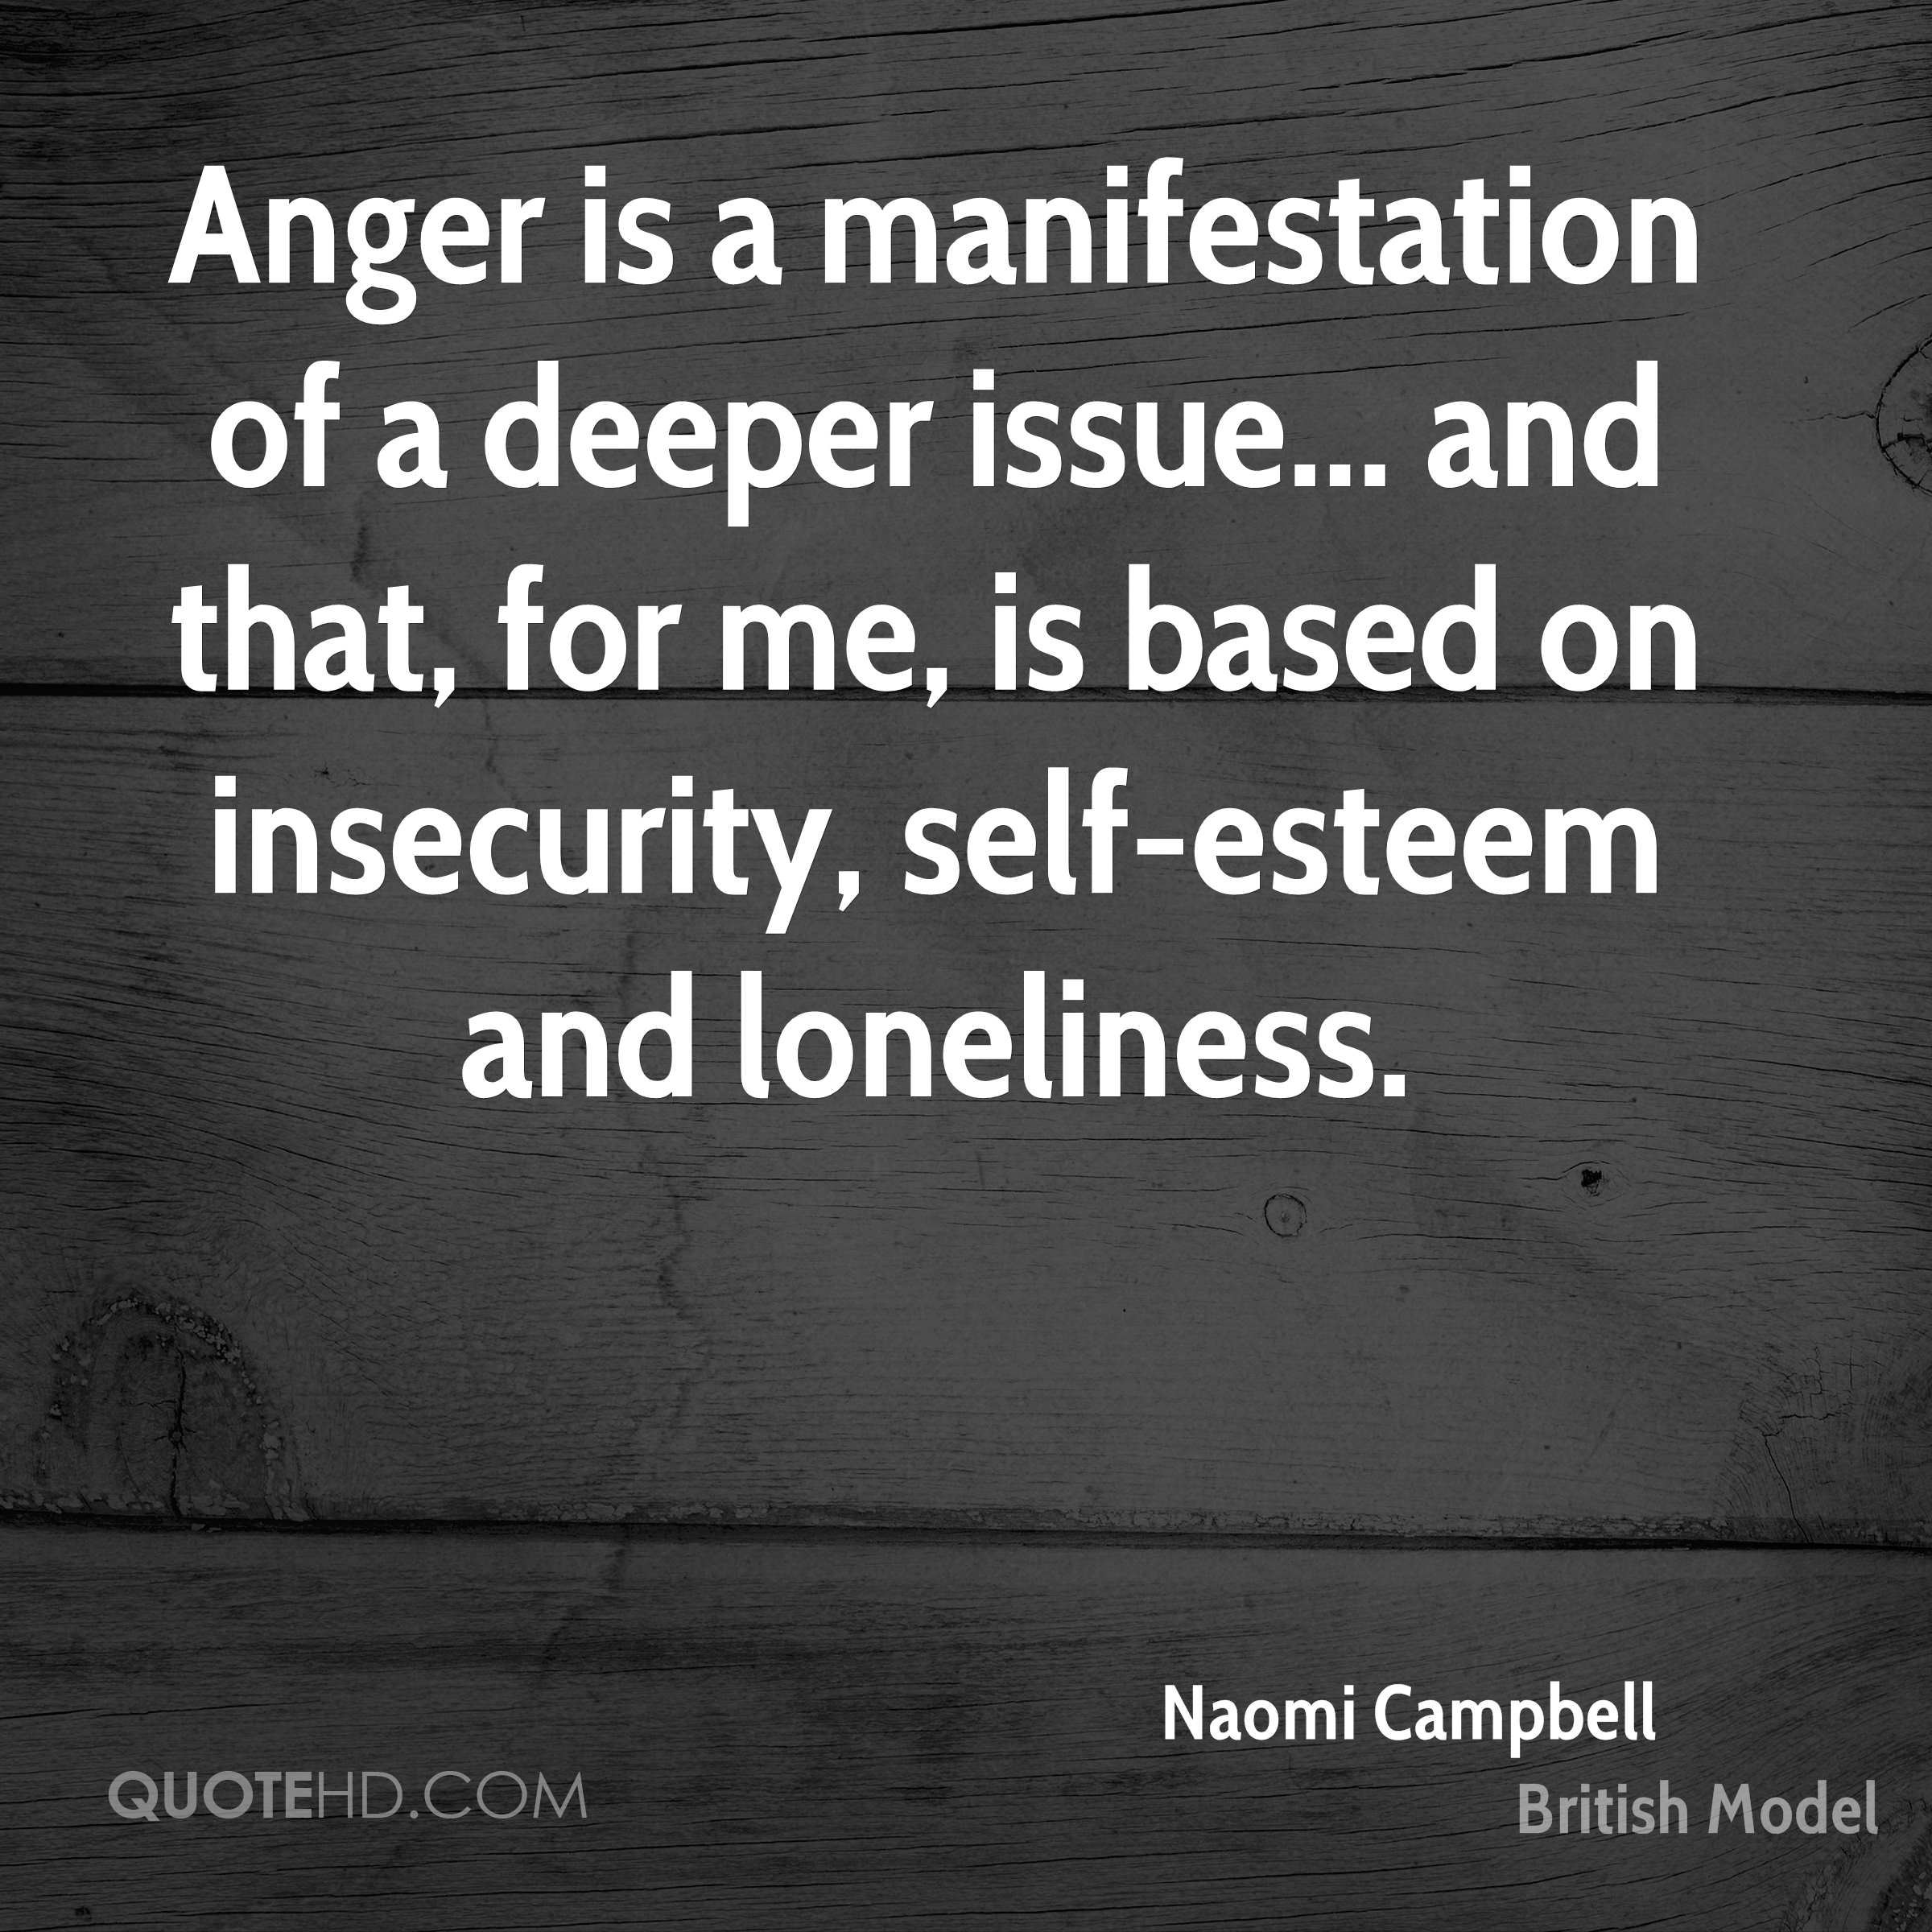 Anger is a manifestation of a deeper issue... and that, for me, is based on insecurity, self-esteem and loneliness.